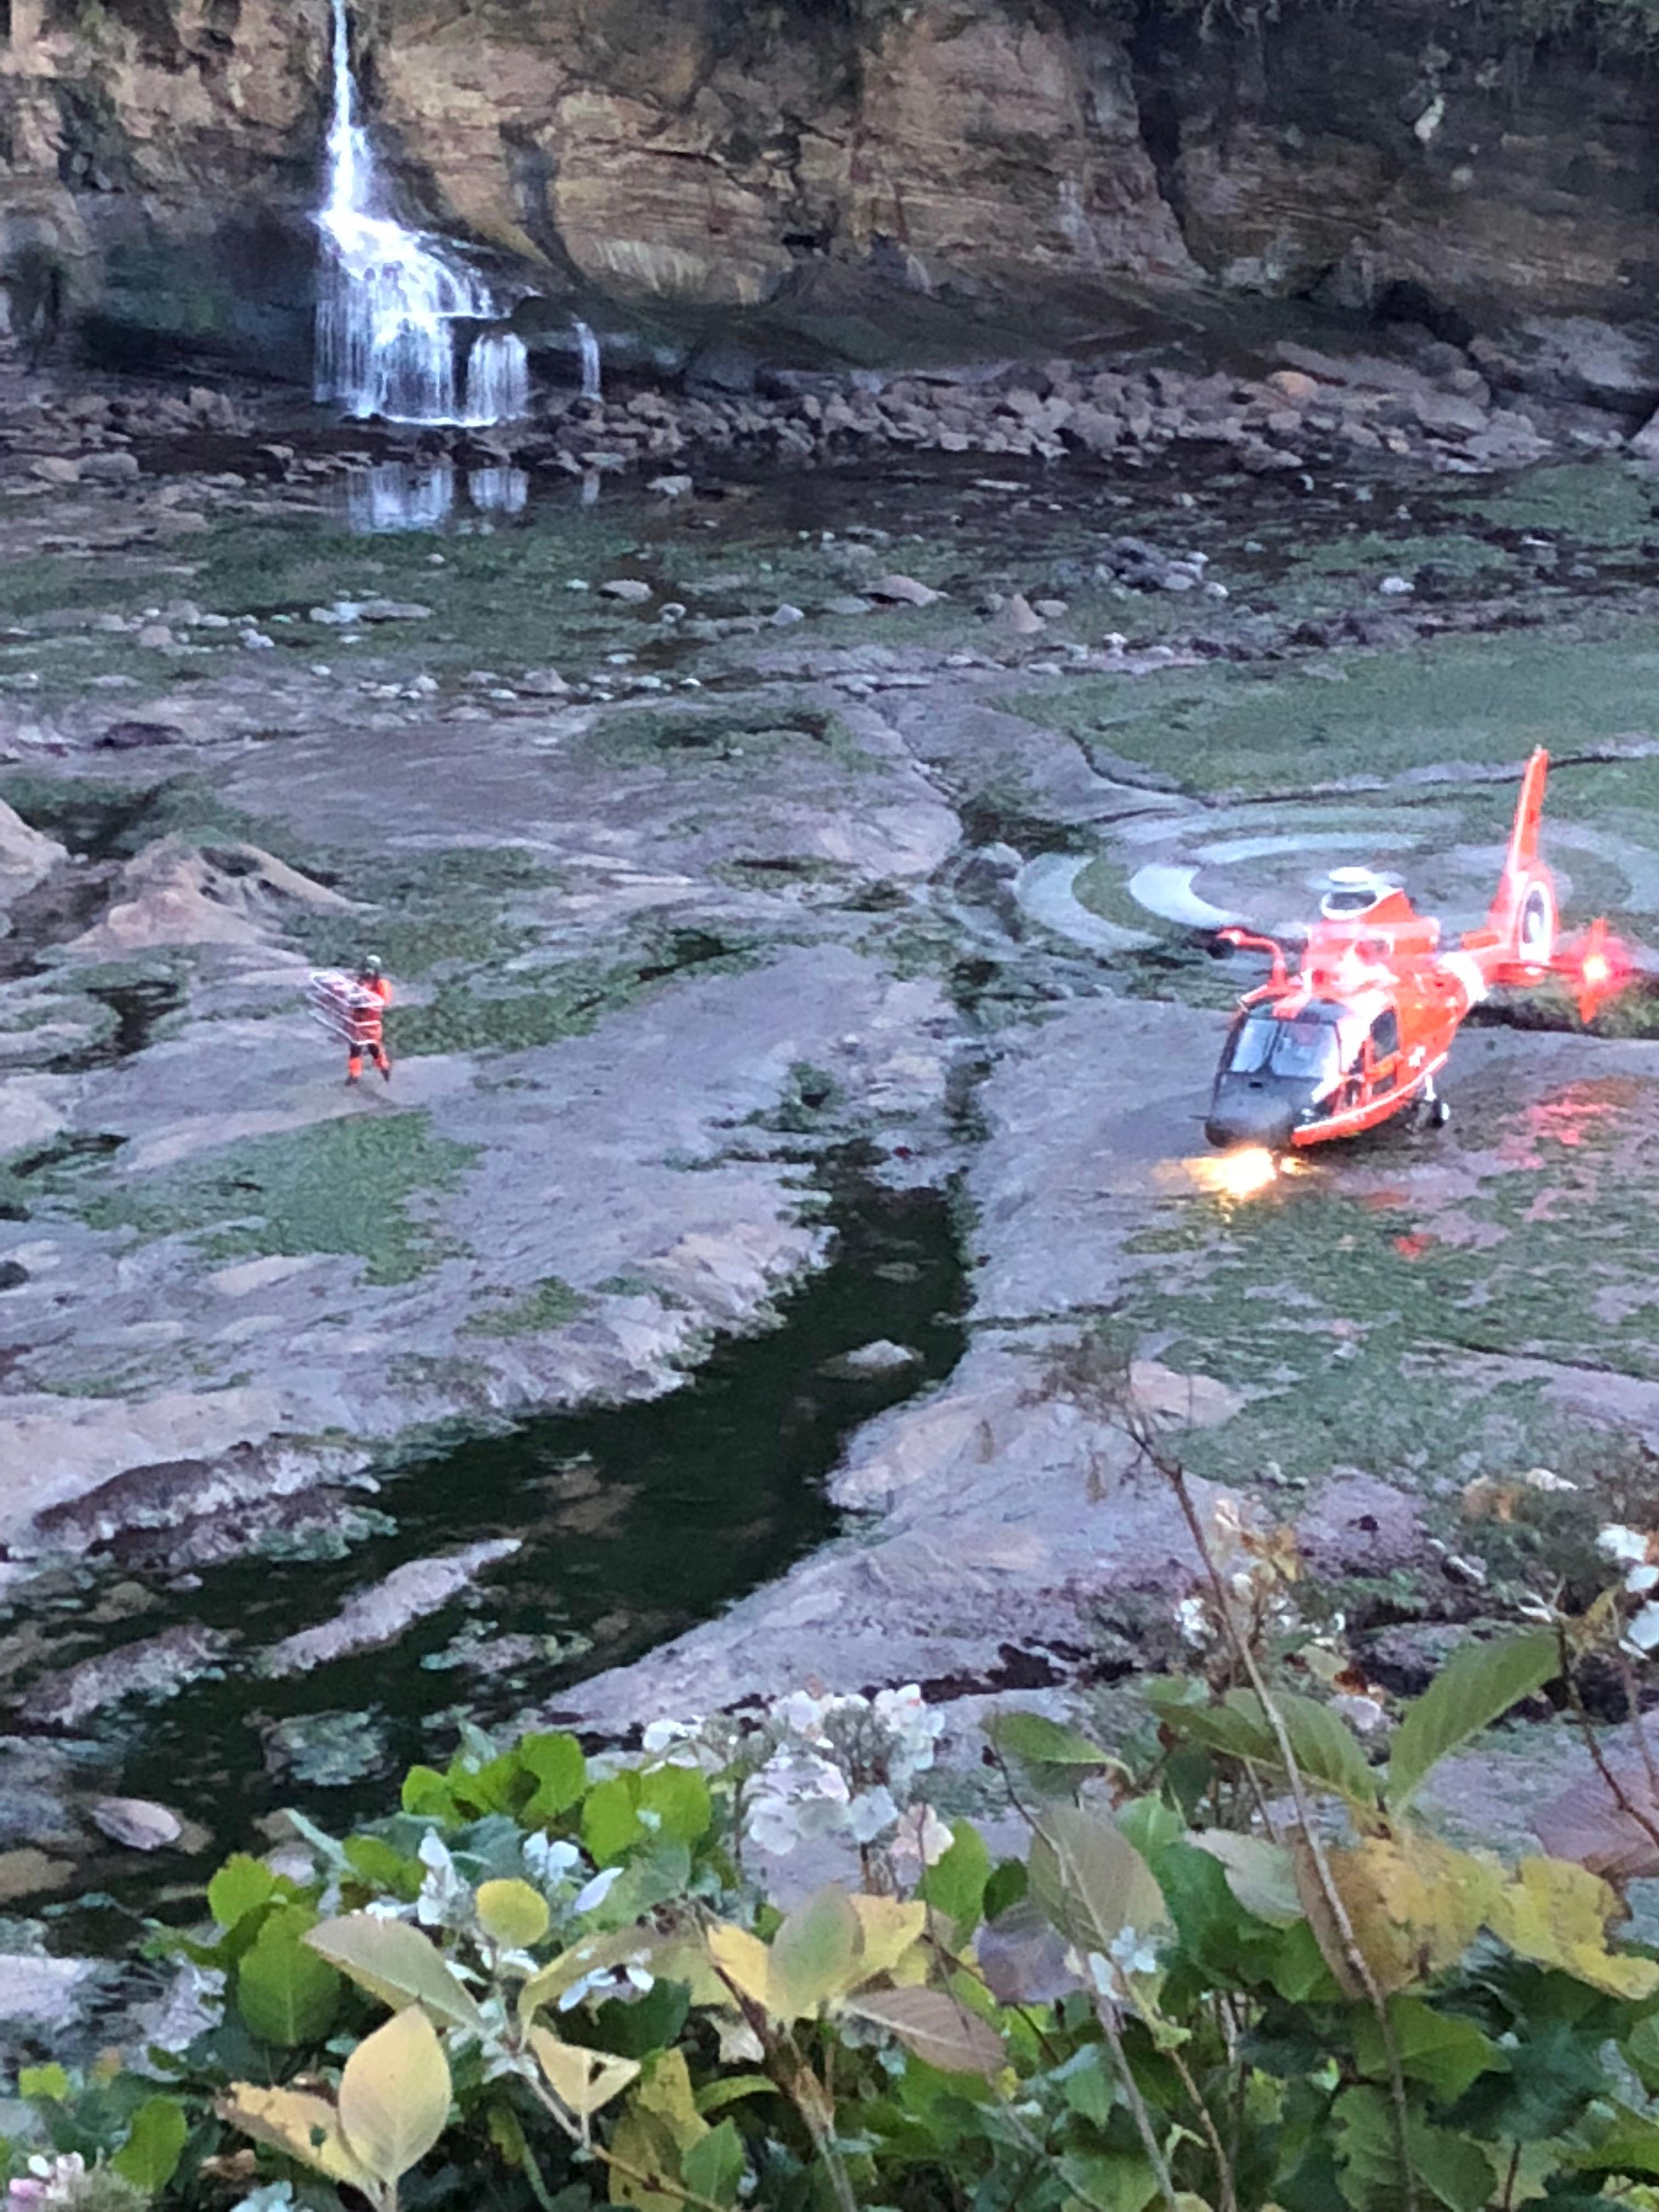 Firefighters called in a U.S. Coast Guard helicopter at Big Whale Cove near Depoe Bay, Oregon on Tuesday, Jan. 2, 2018 to help rescue a man suffering from a medical issue. (Photo: Depoe Bay Fire District)